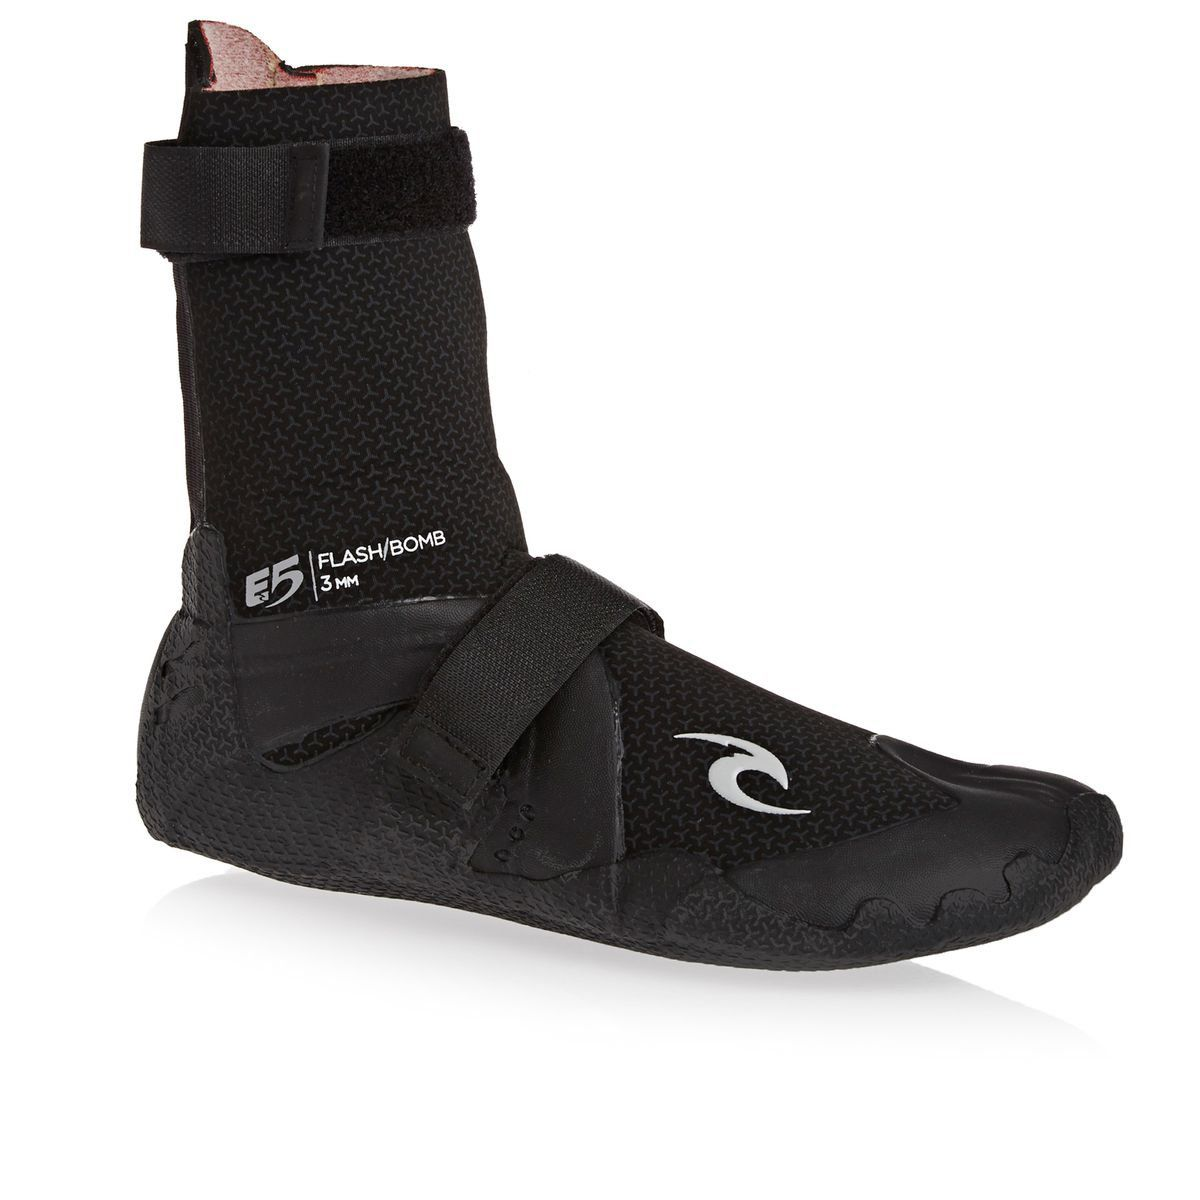 Bota de Surf Rip Curl Flashbomb Split Toe E5 3mm